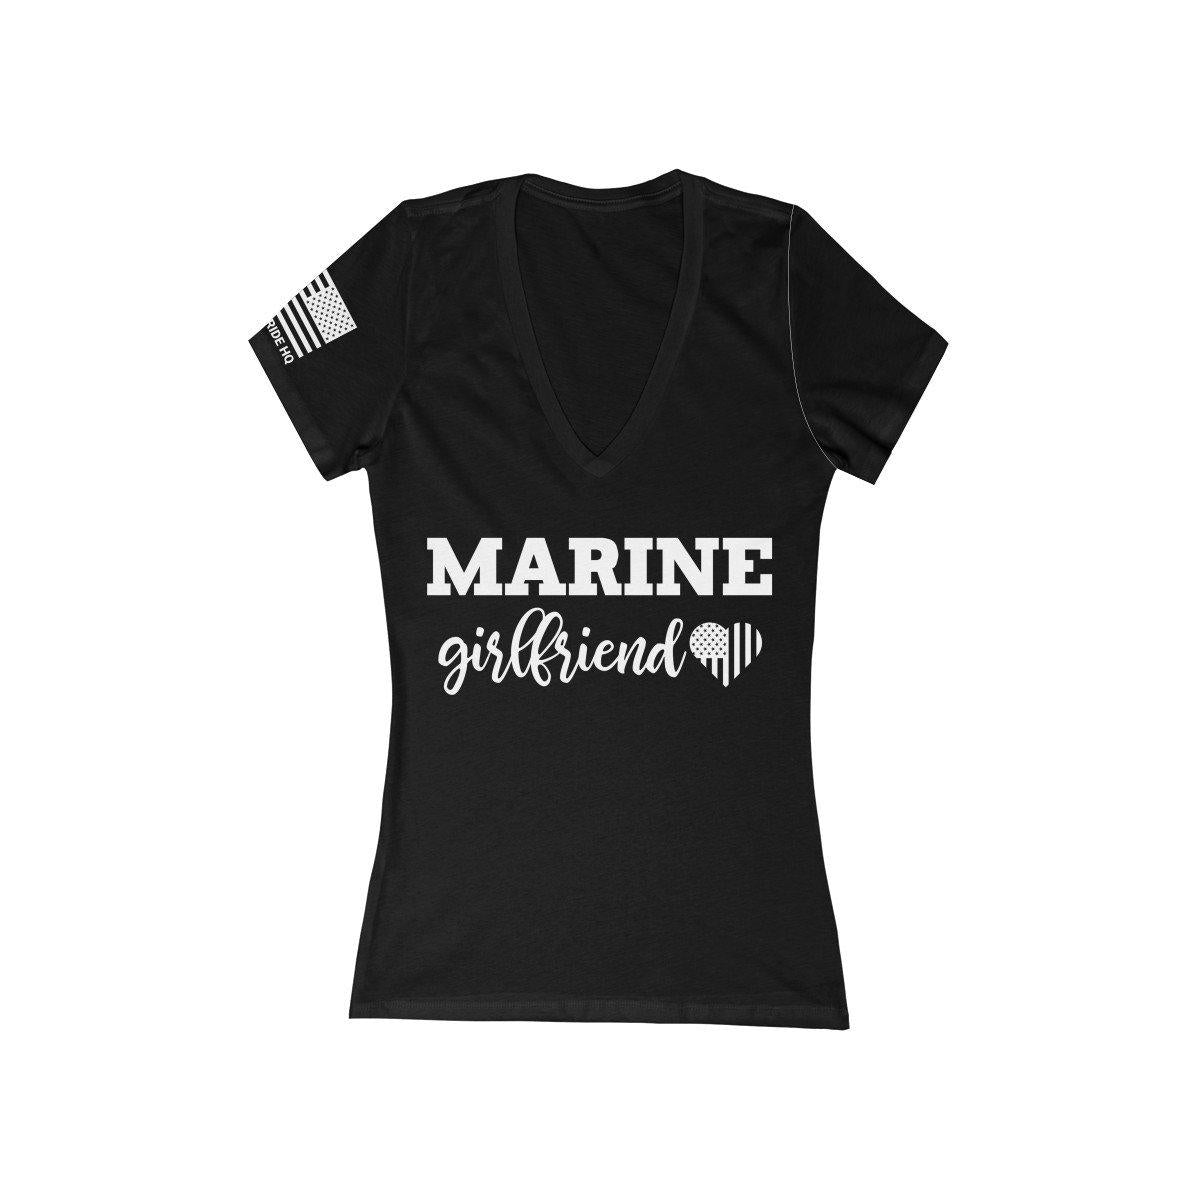 Marine Girlfriend Women's V-Neck Tee